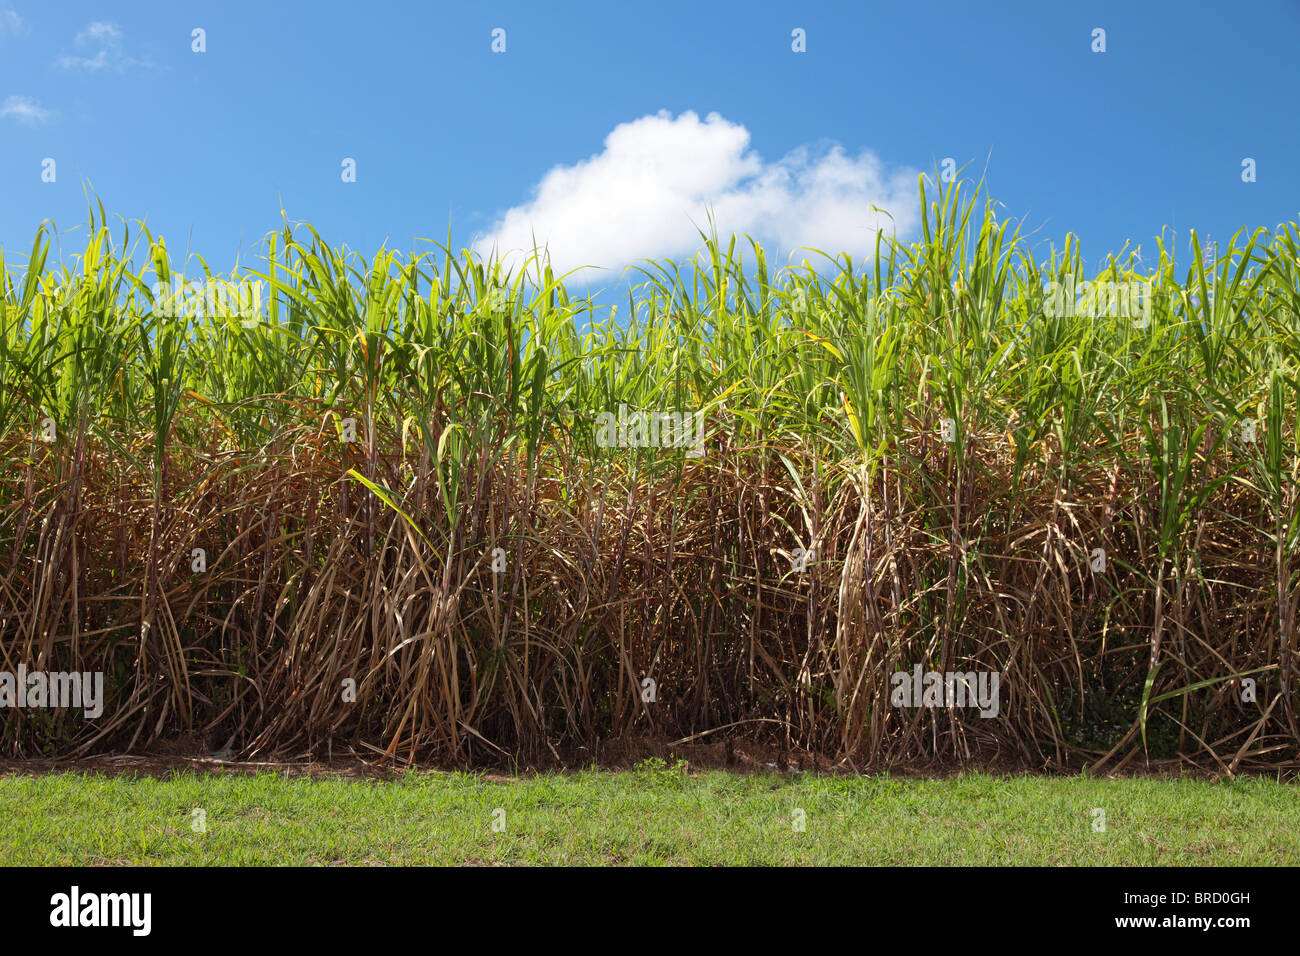 Typical sugarcane field in Eastern Australia. - Stock Image